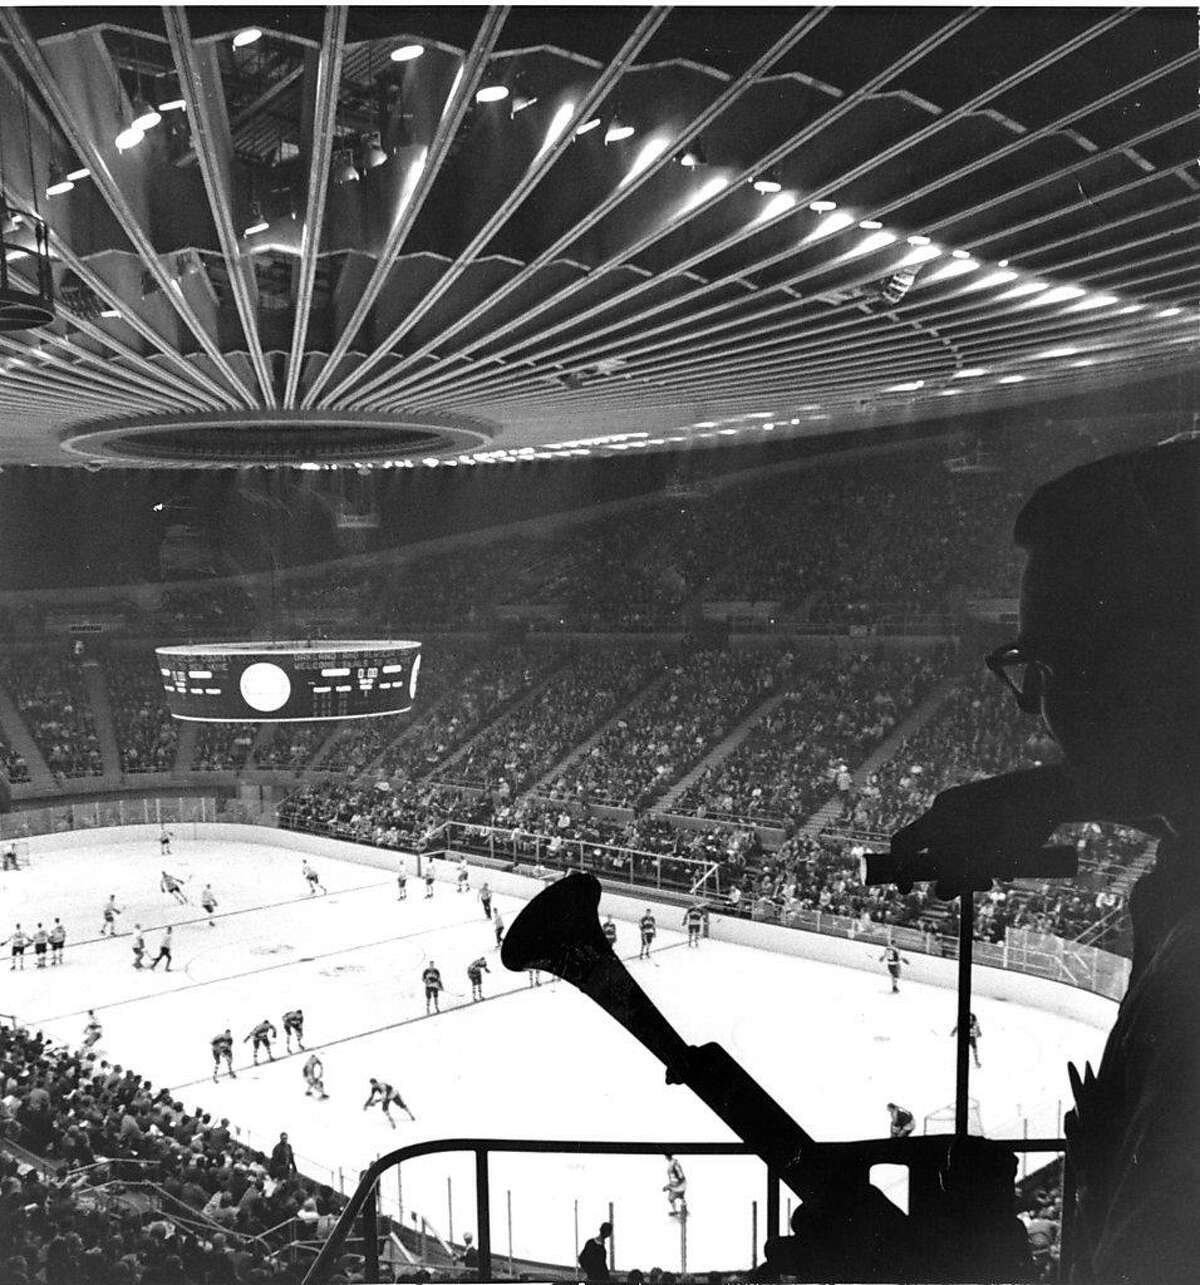 The Oakland Coliseum and Arena construction completed Seen here, the inauguration of Arena as it is hosting an Ice Hockey game between the California Seals and San Diego Gulls AP Photo photo ran 12/11/1966, p. 8